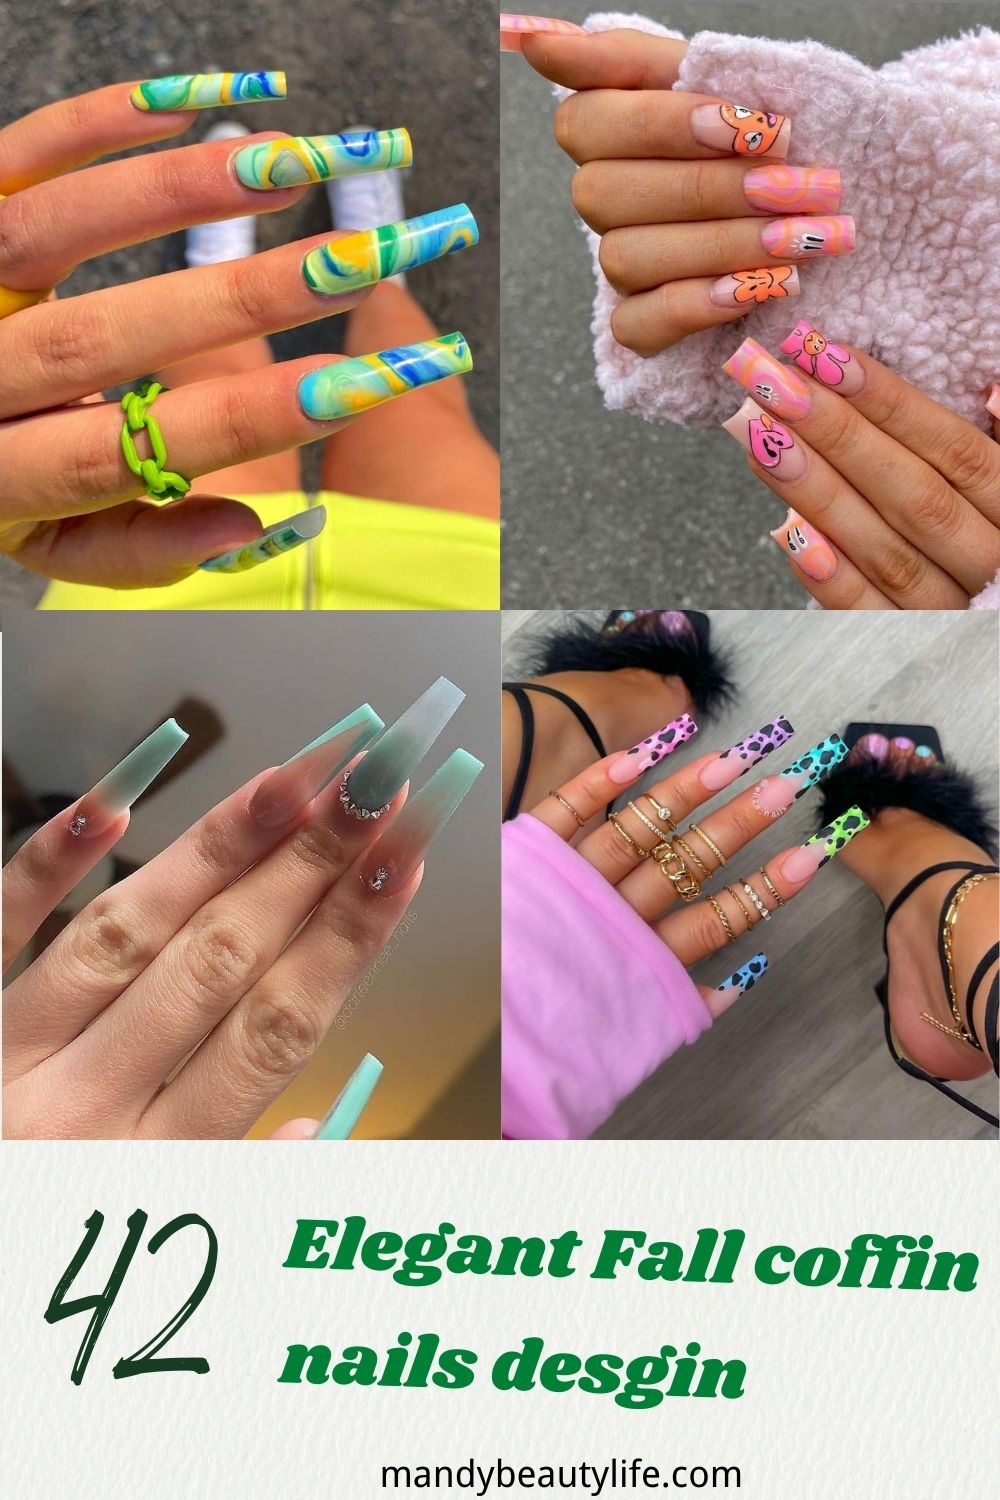 Fall coffin nails 2021 ideas with glitter, rhinestone, ombre nail color to try